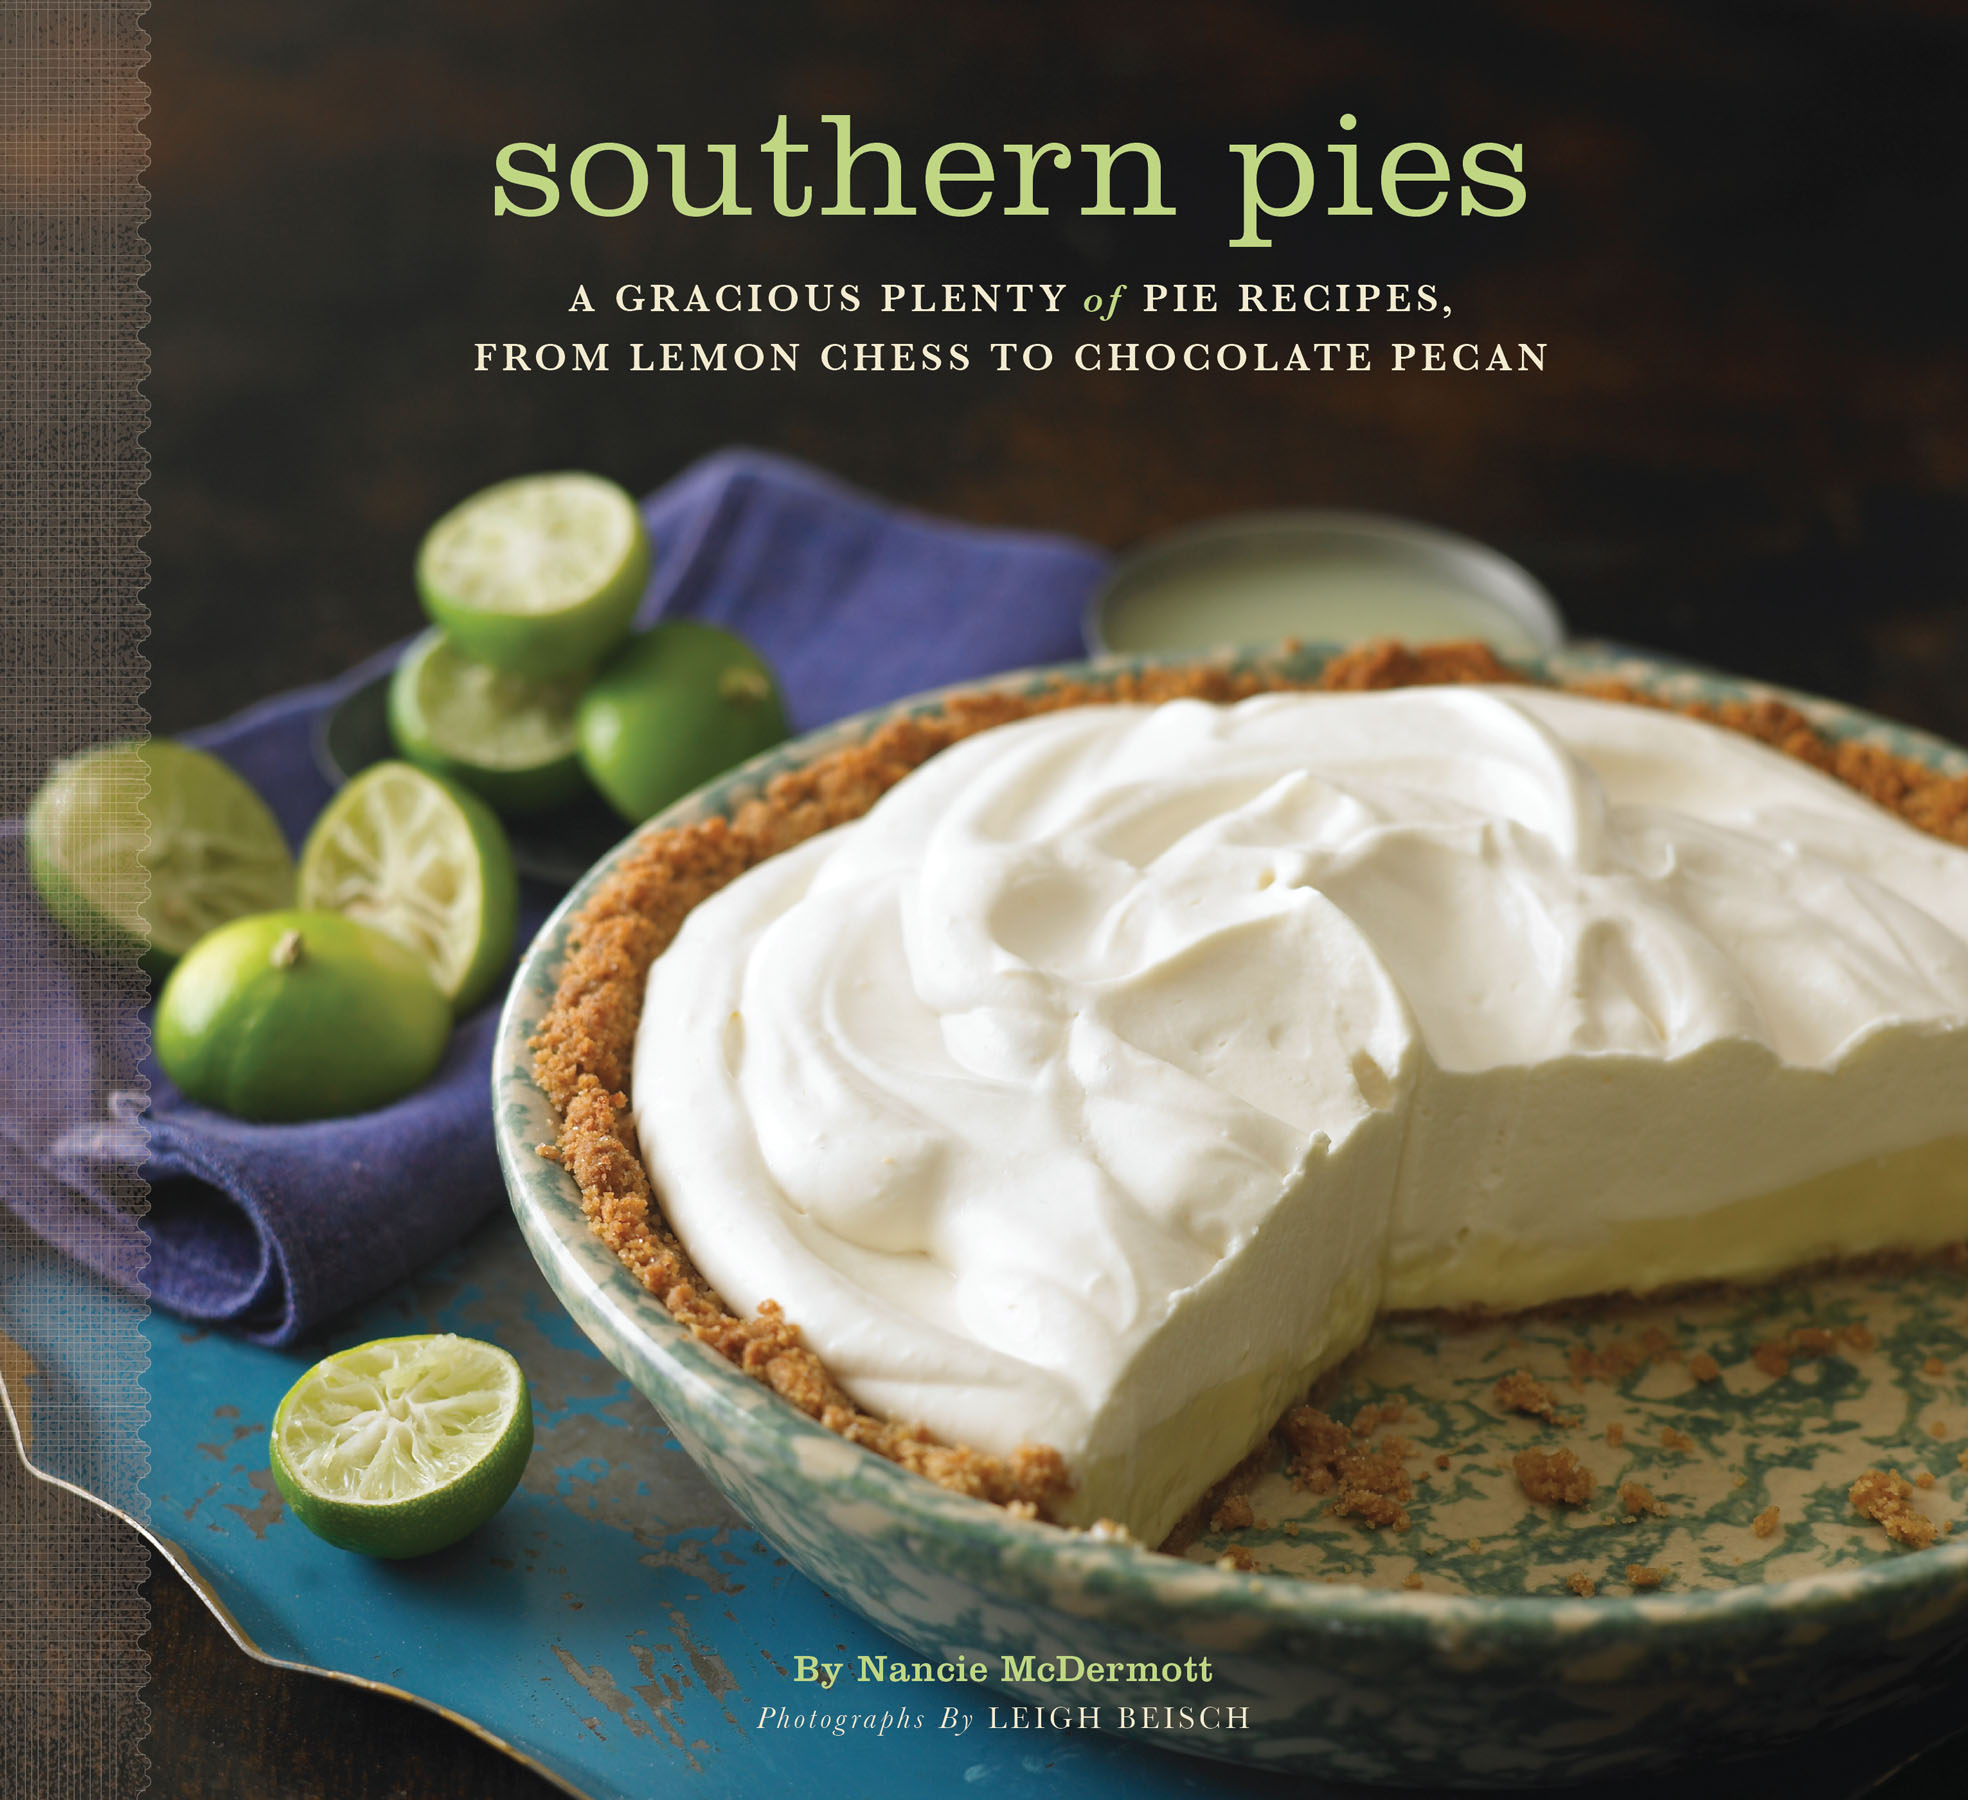 Photographer Leigh Beisch and her team made my recipes look gorgeous and so so good